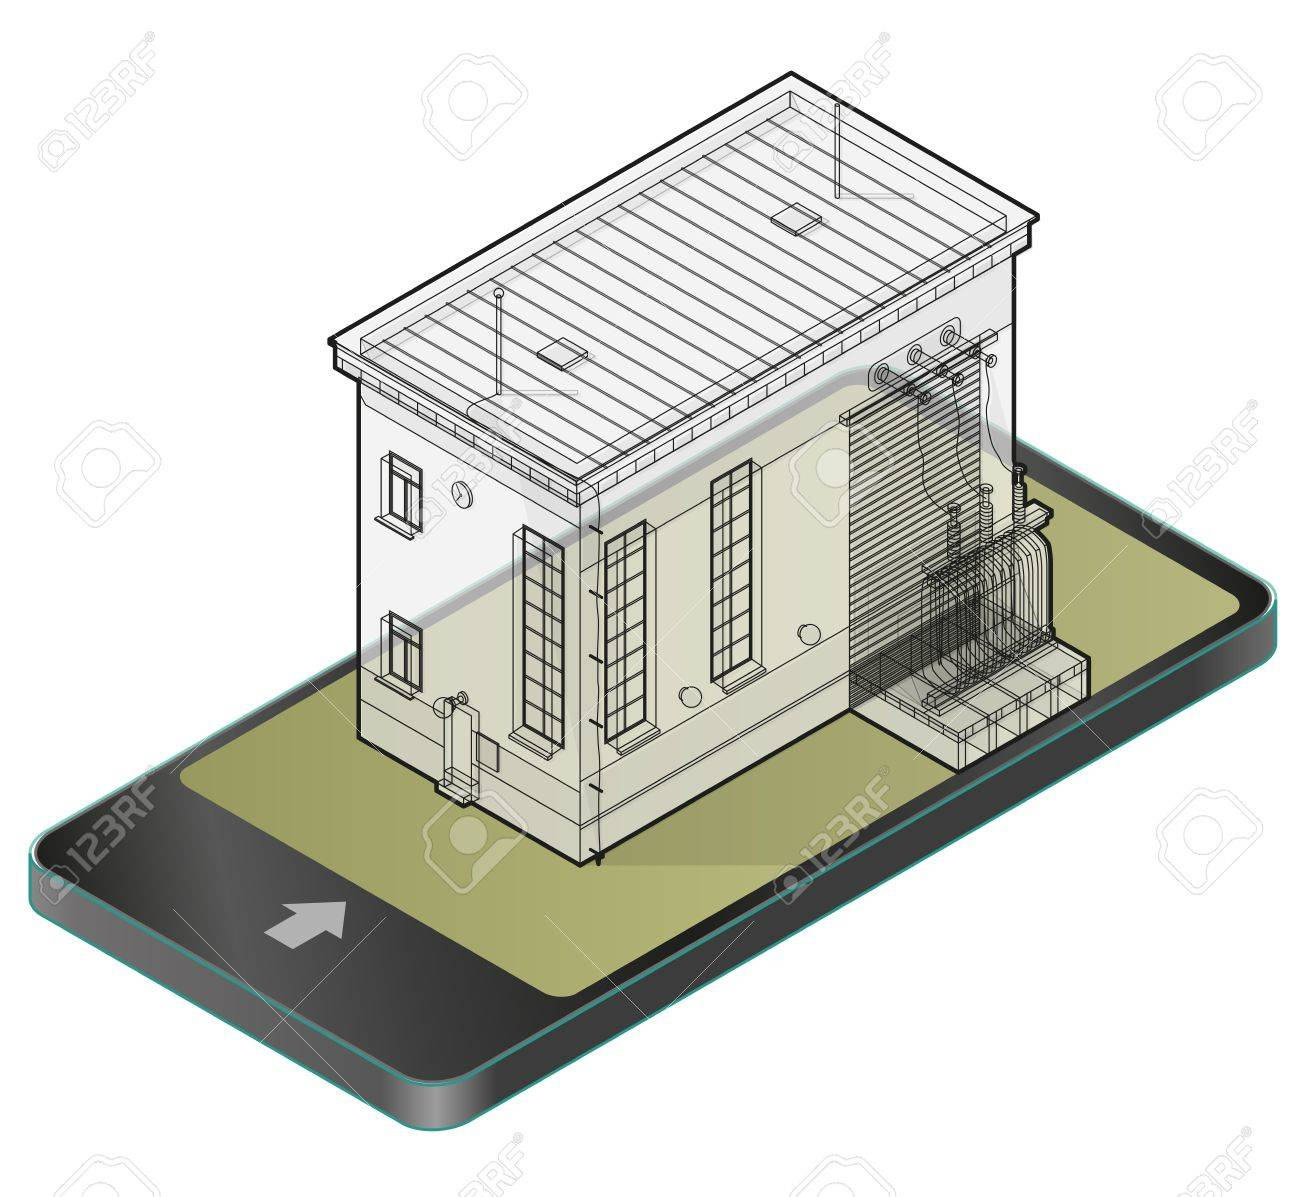 Isometric Plans Electrical Wiring Information Of Diagram House Planning Electric Transformer Building In Mobile Phone Outlined Rh 123rf Com Floor Plan Symbols